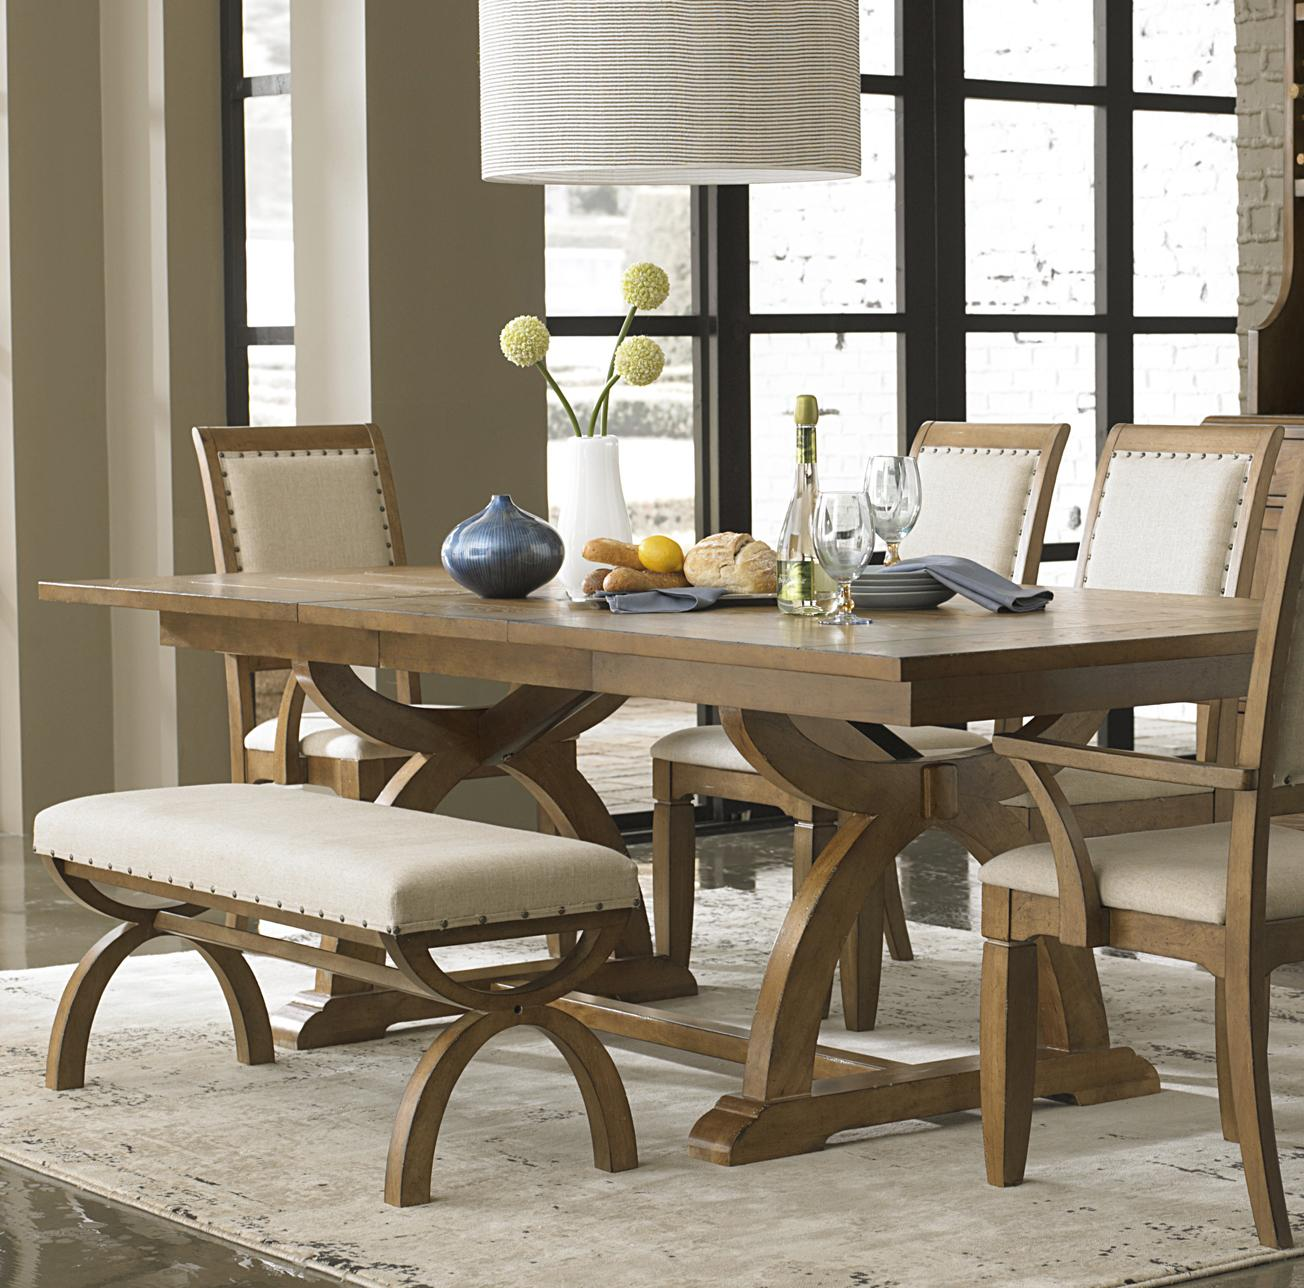 Dinette Bench Seating: Dining Room Table With Bench Seat